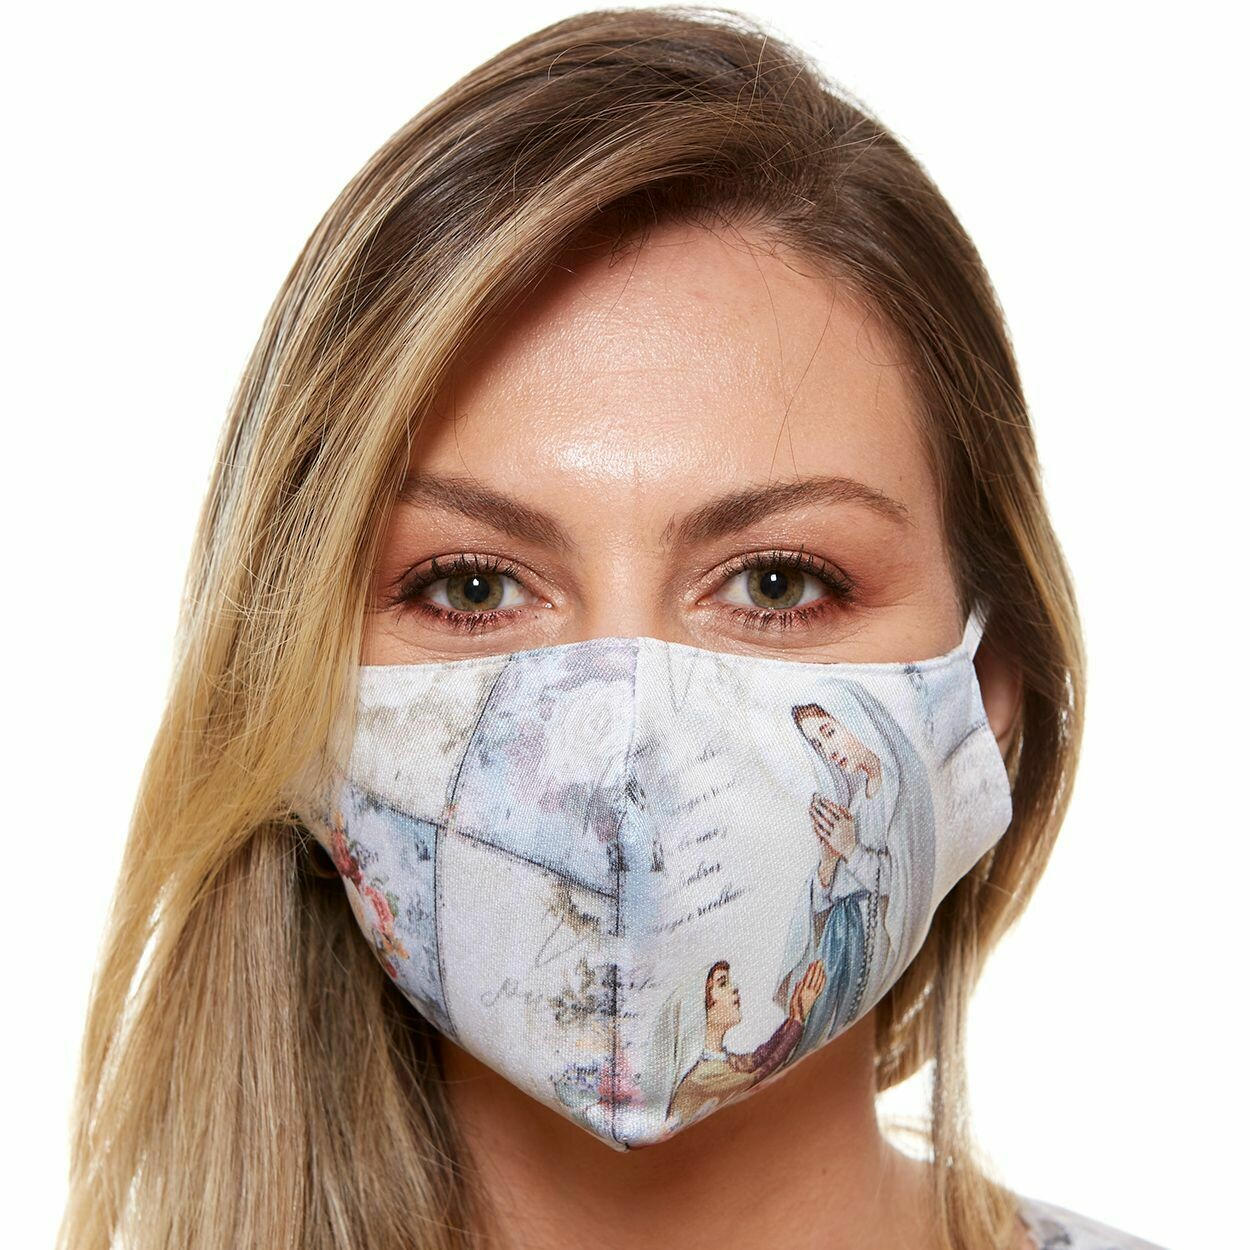 MDA6025 - Our Lady of Lourdes Face Mask